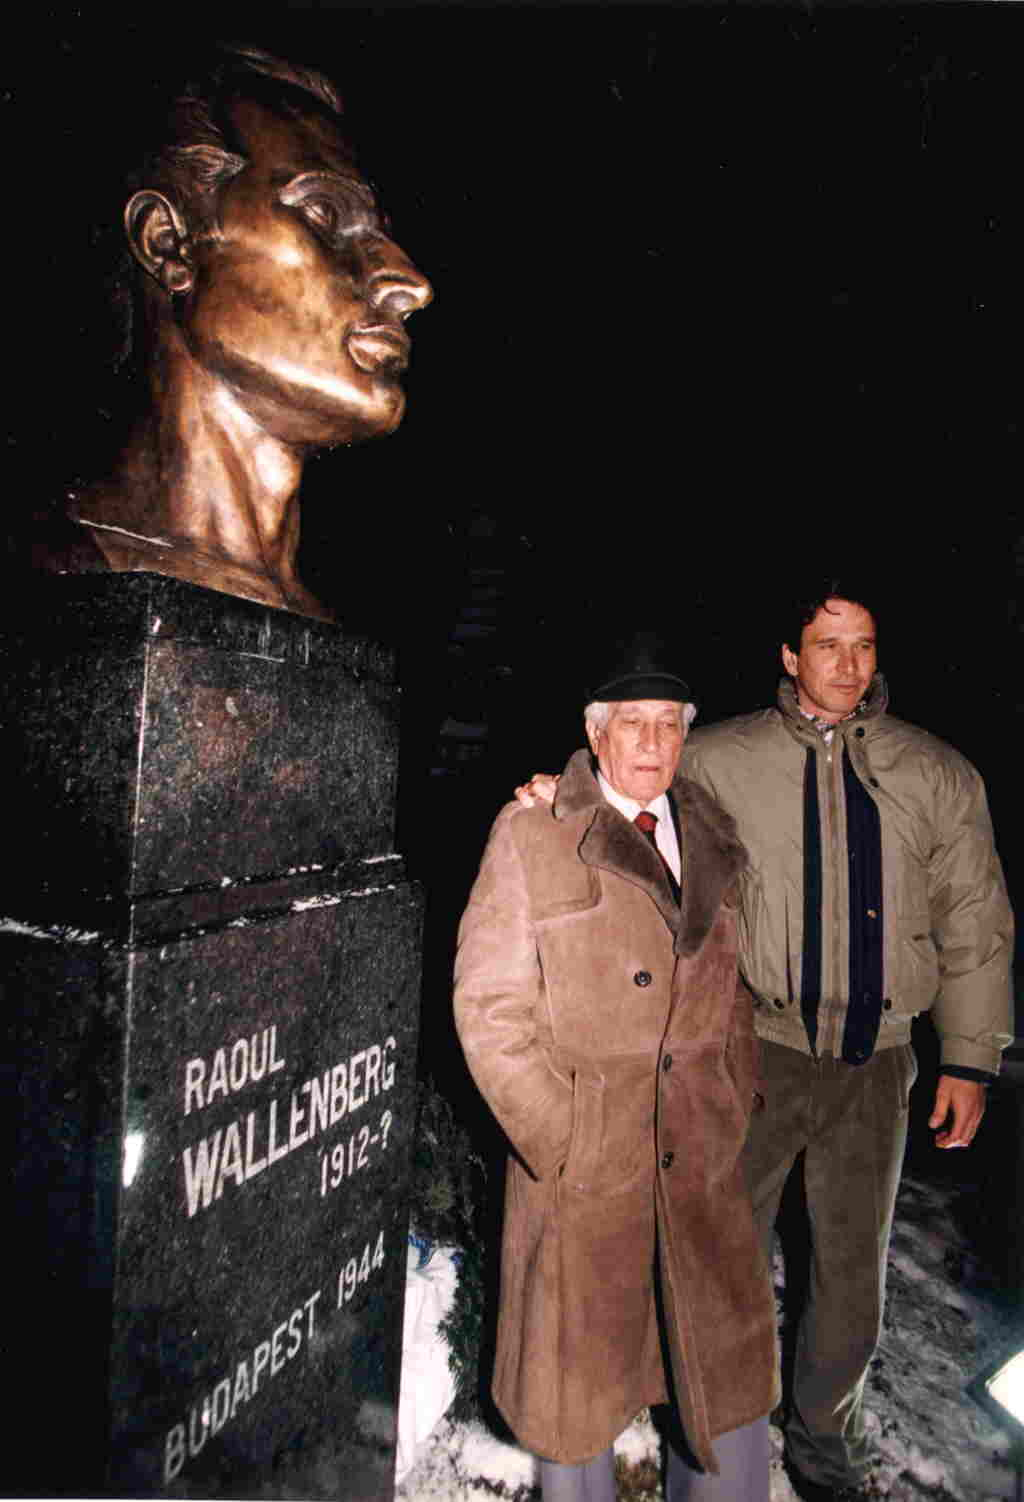 Bust honors man behind   Wallenberg passports Raoul Wallenberg Passports